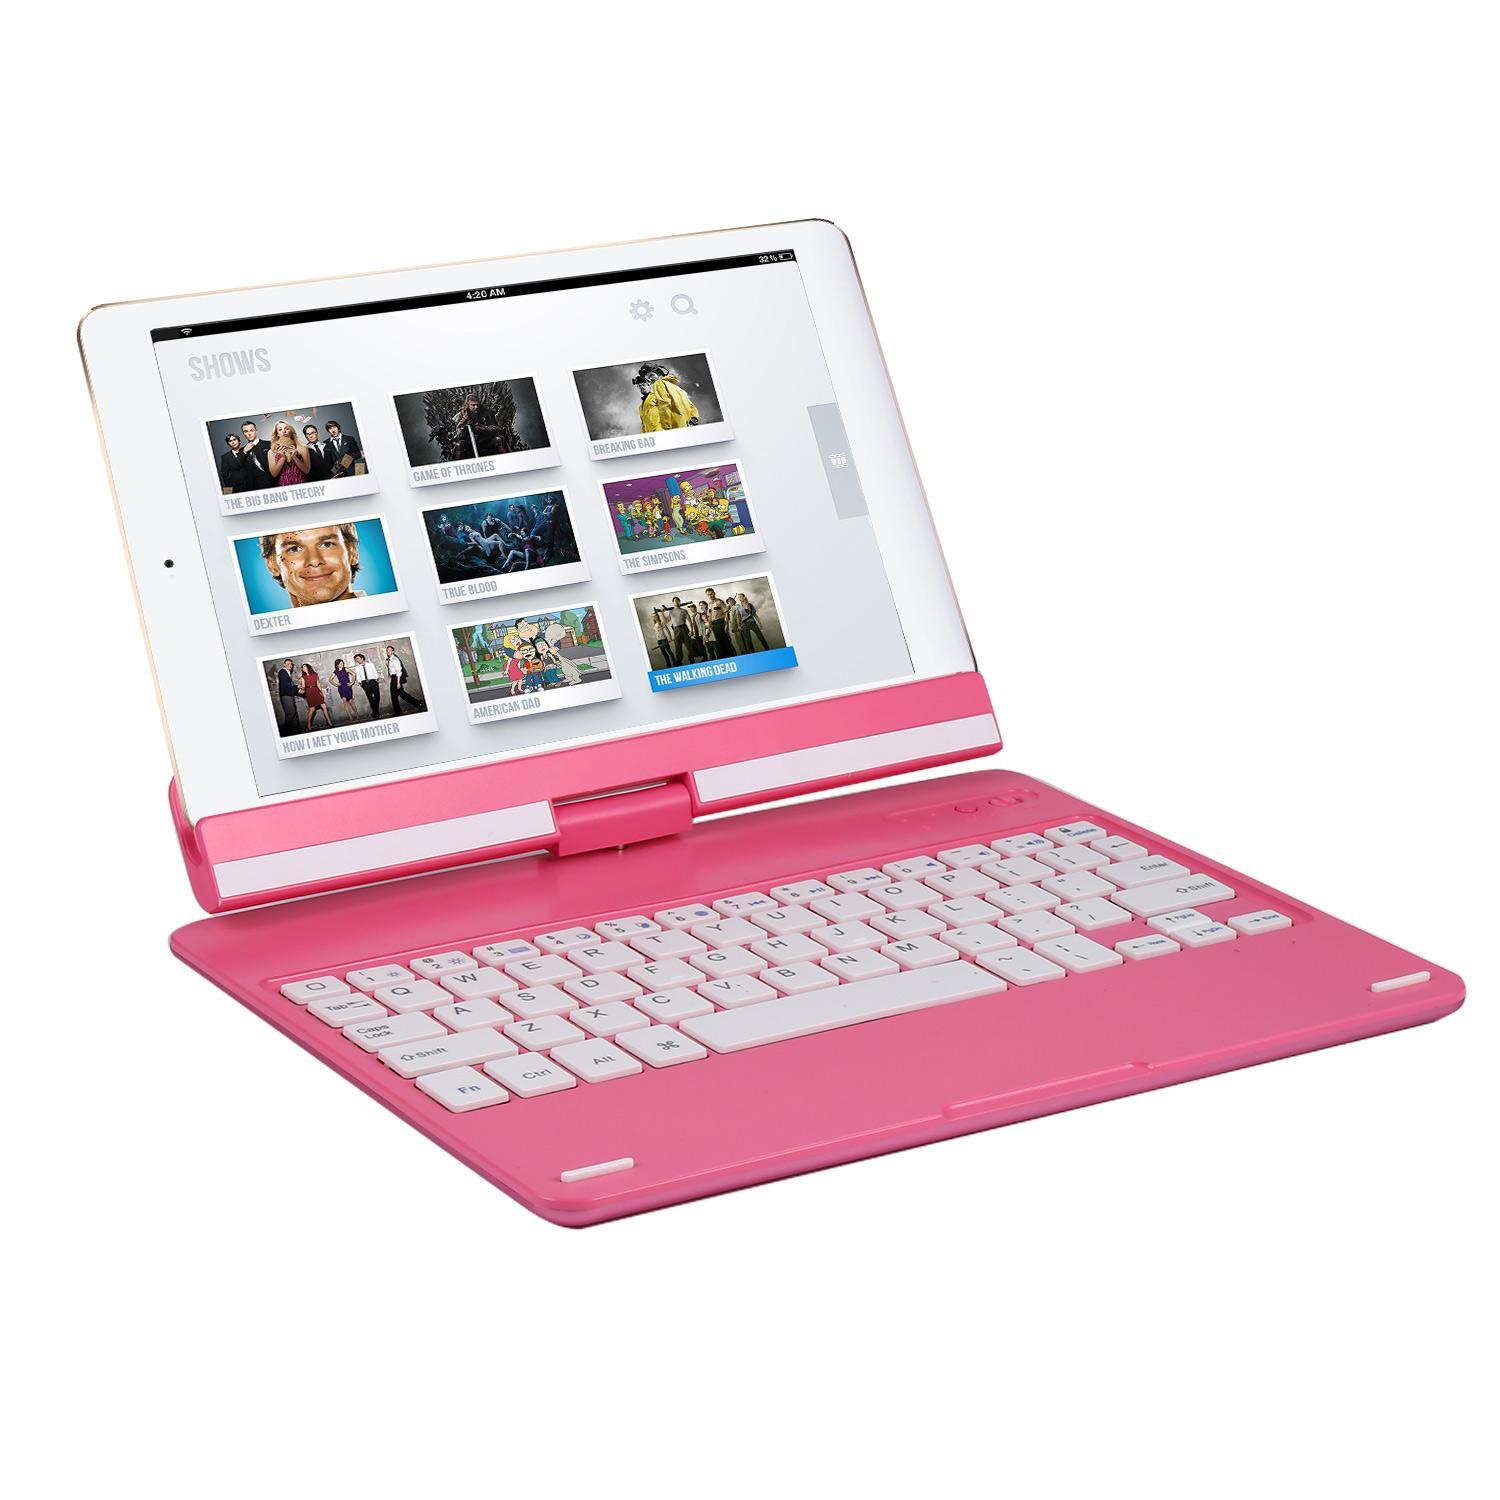 Wireless Bluetooth Keyboard With 360° Rotatable Stand for 9.7inch iPad Air IOS/Andr oid Tablet HFON